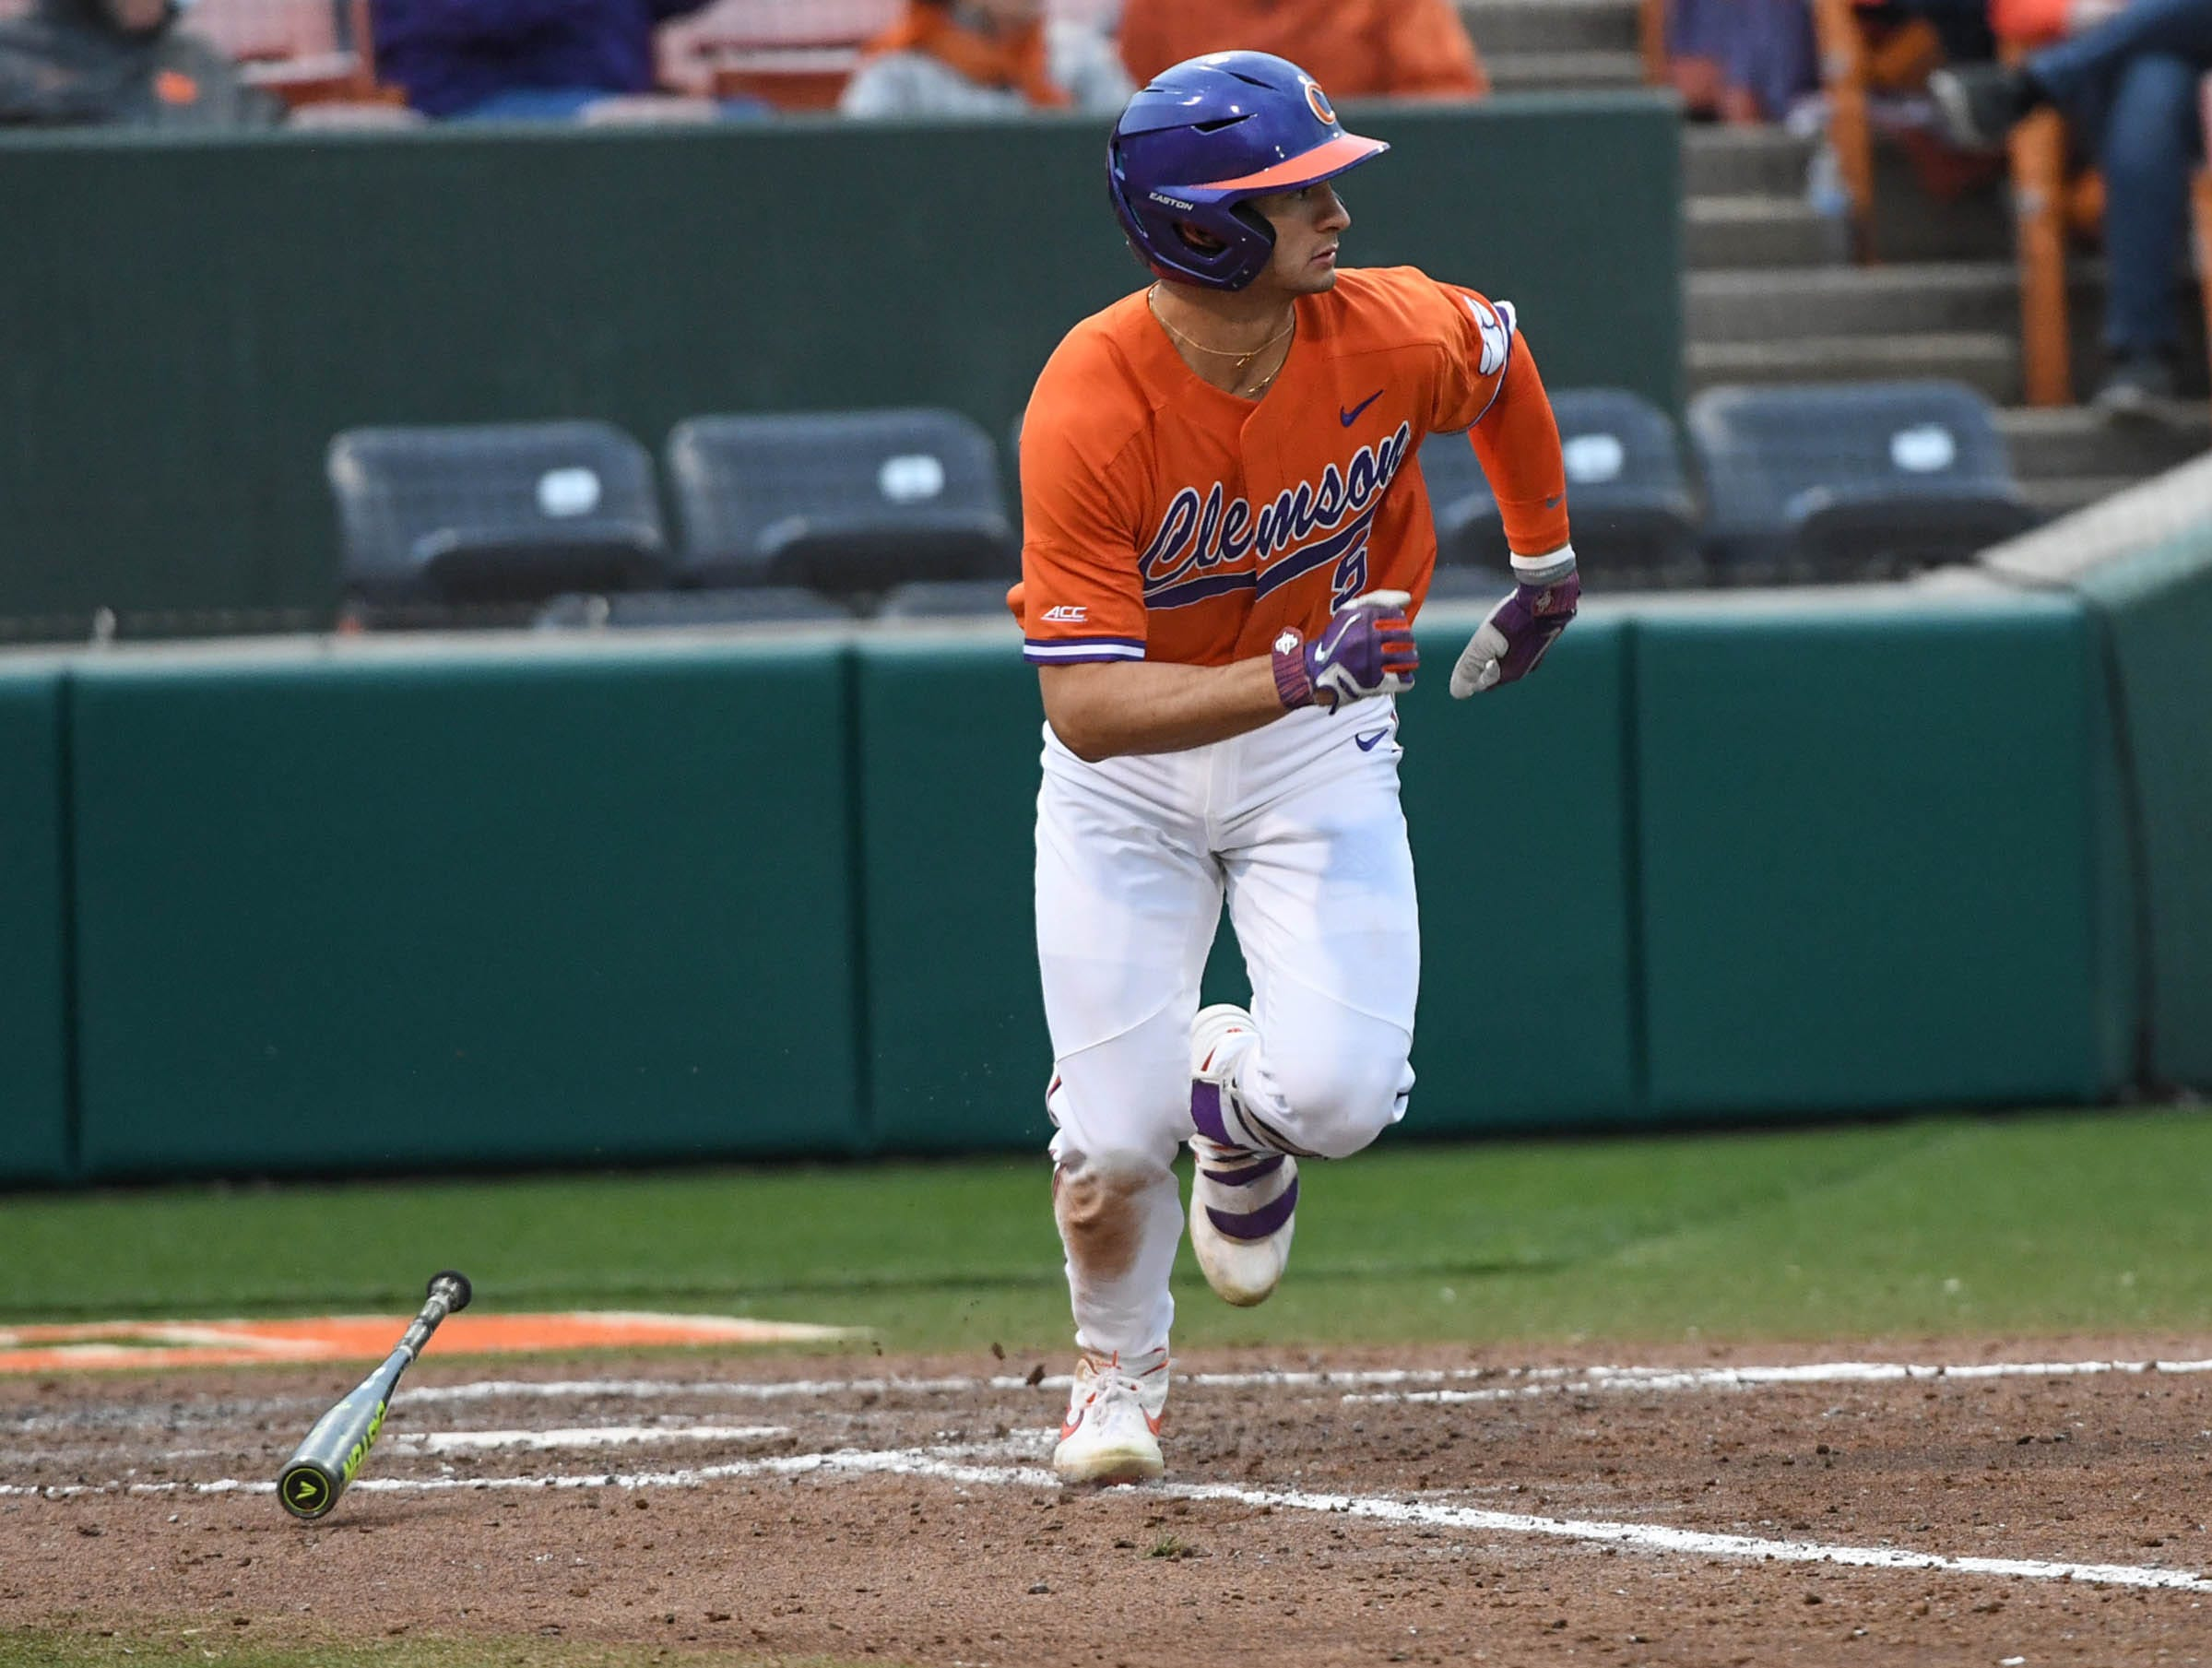 Clemson sophomore Sam Hall(5) drives in two runs against South Alabama during the bottom of the eighth inning at Doug Kingsmore Stadium in Clemson Friday, February 15, 2019.